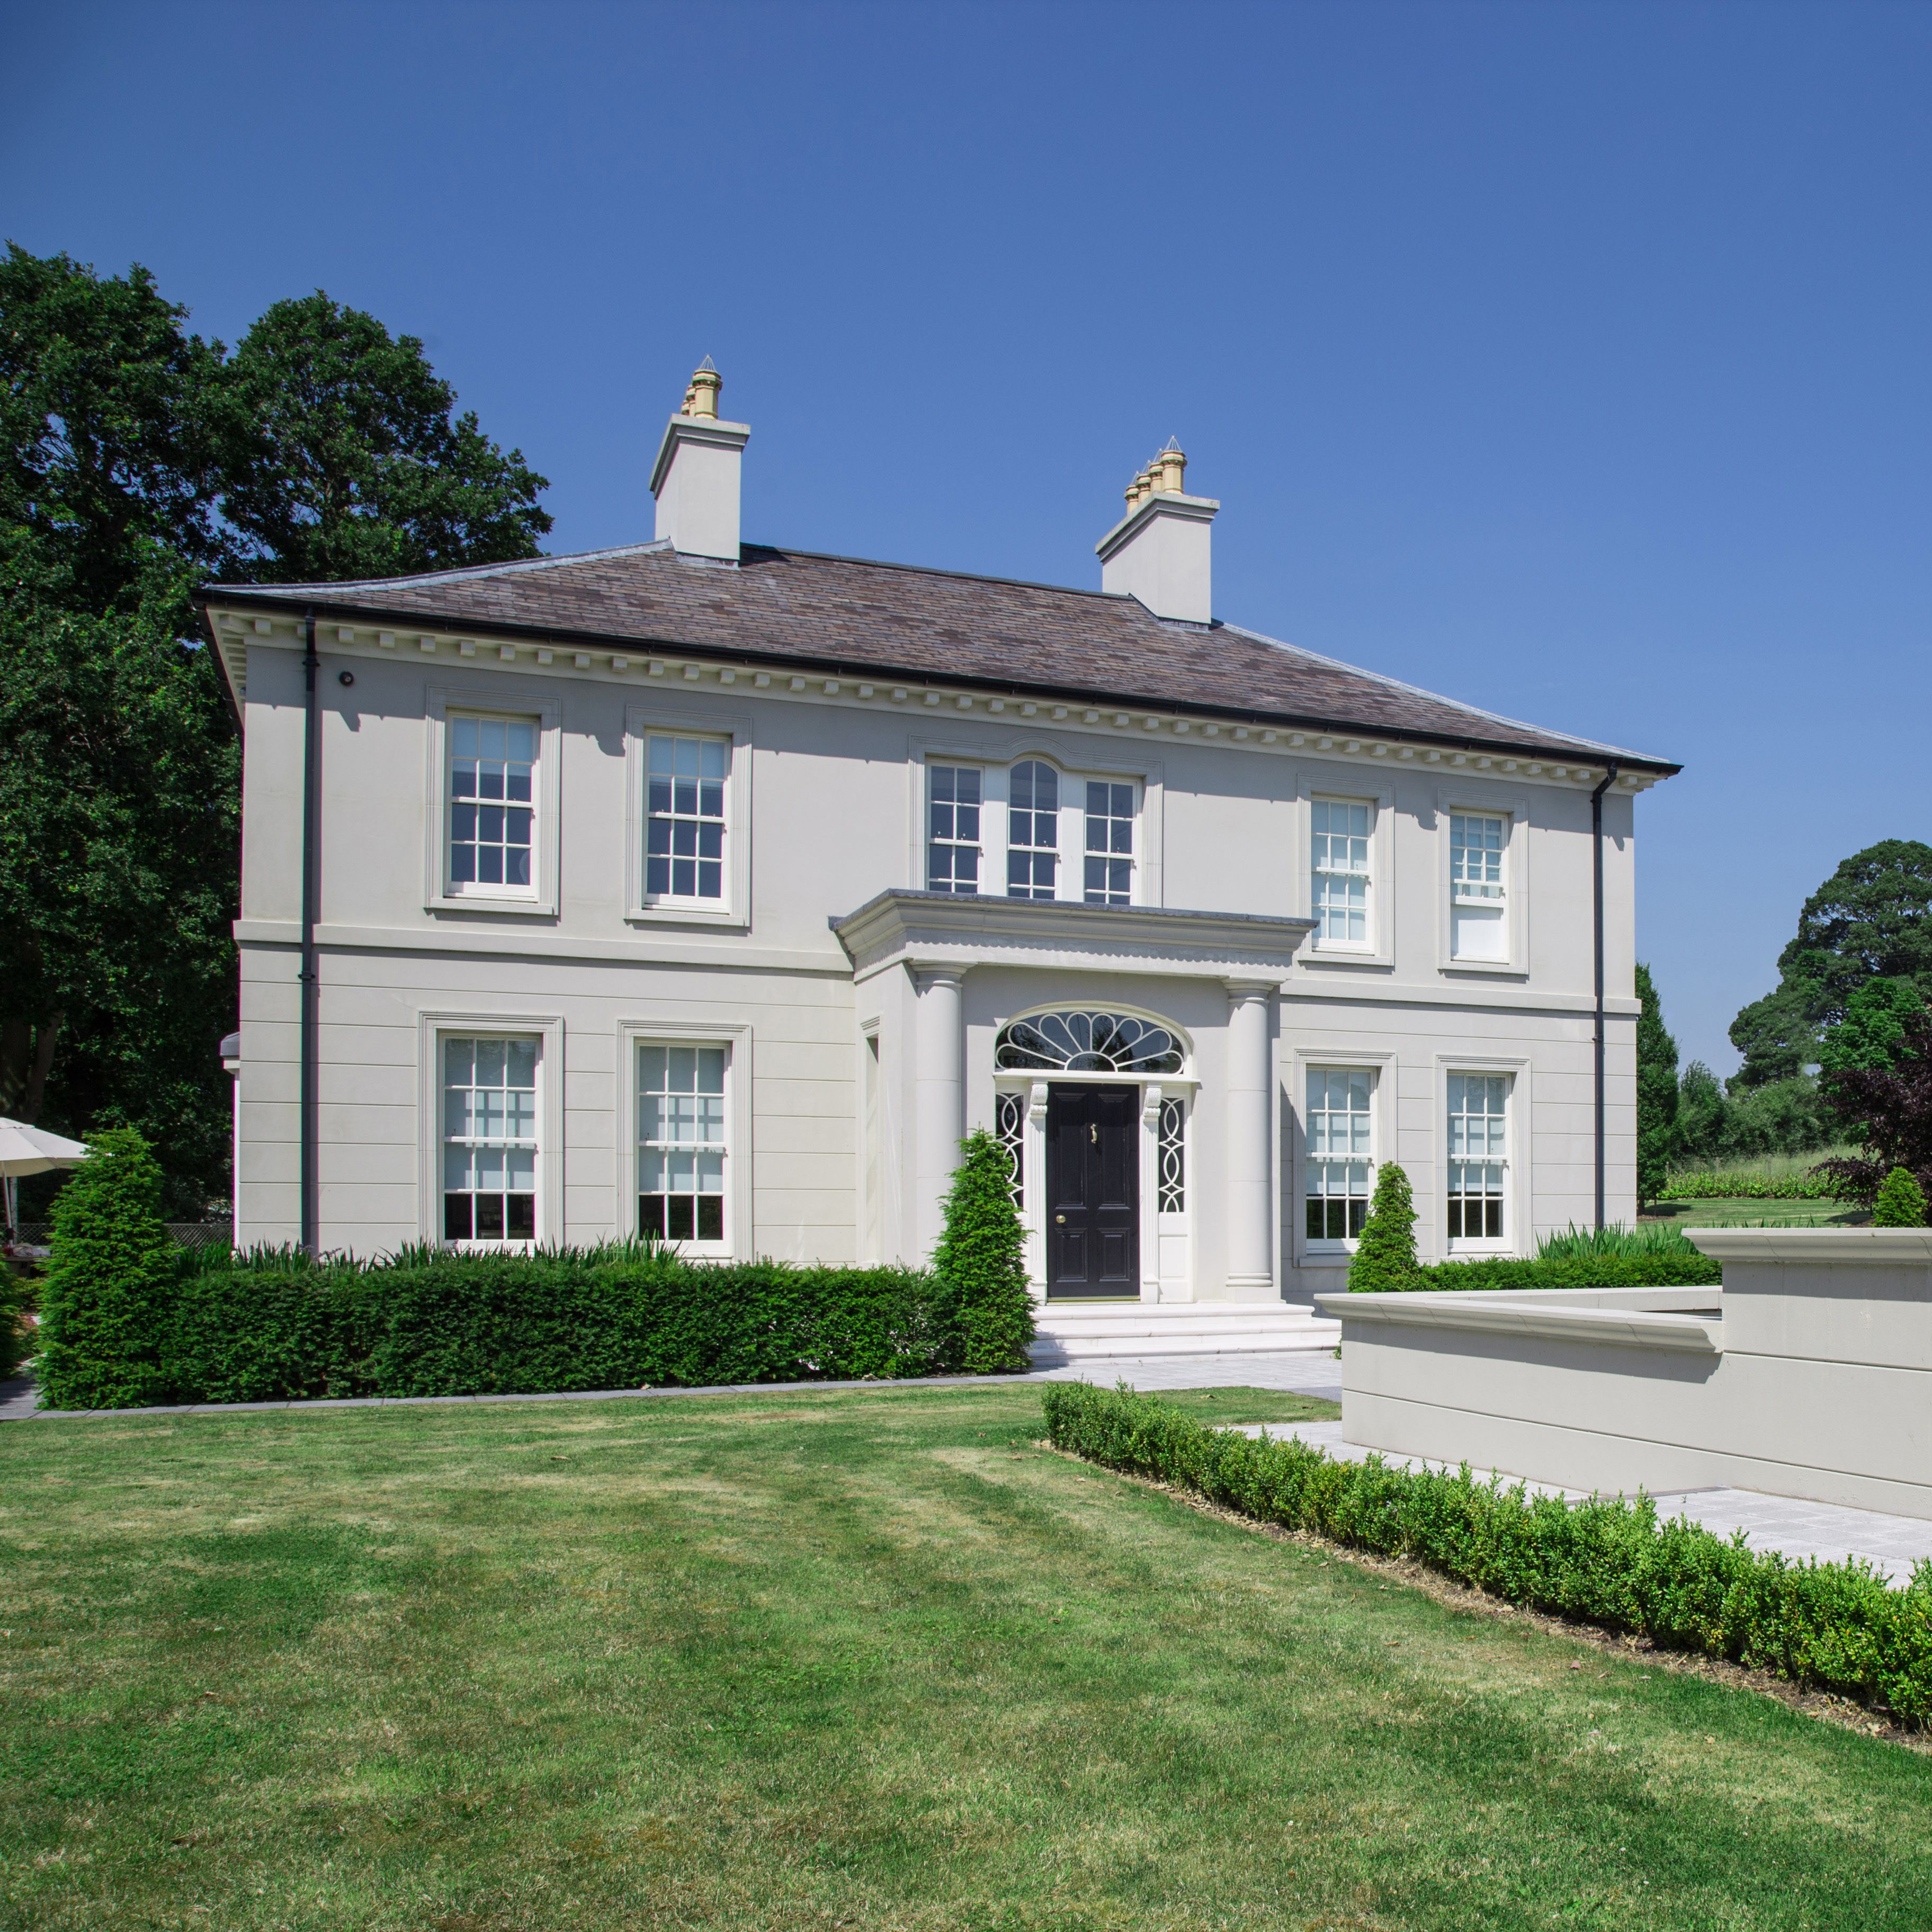 McNeice Georgian Country house #modernfarmhouseexterior